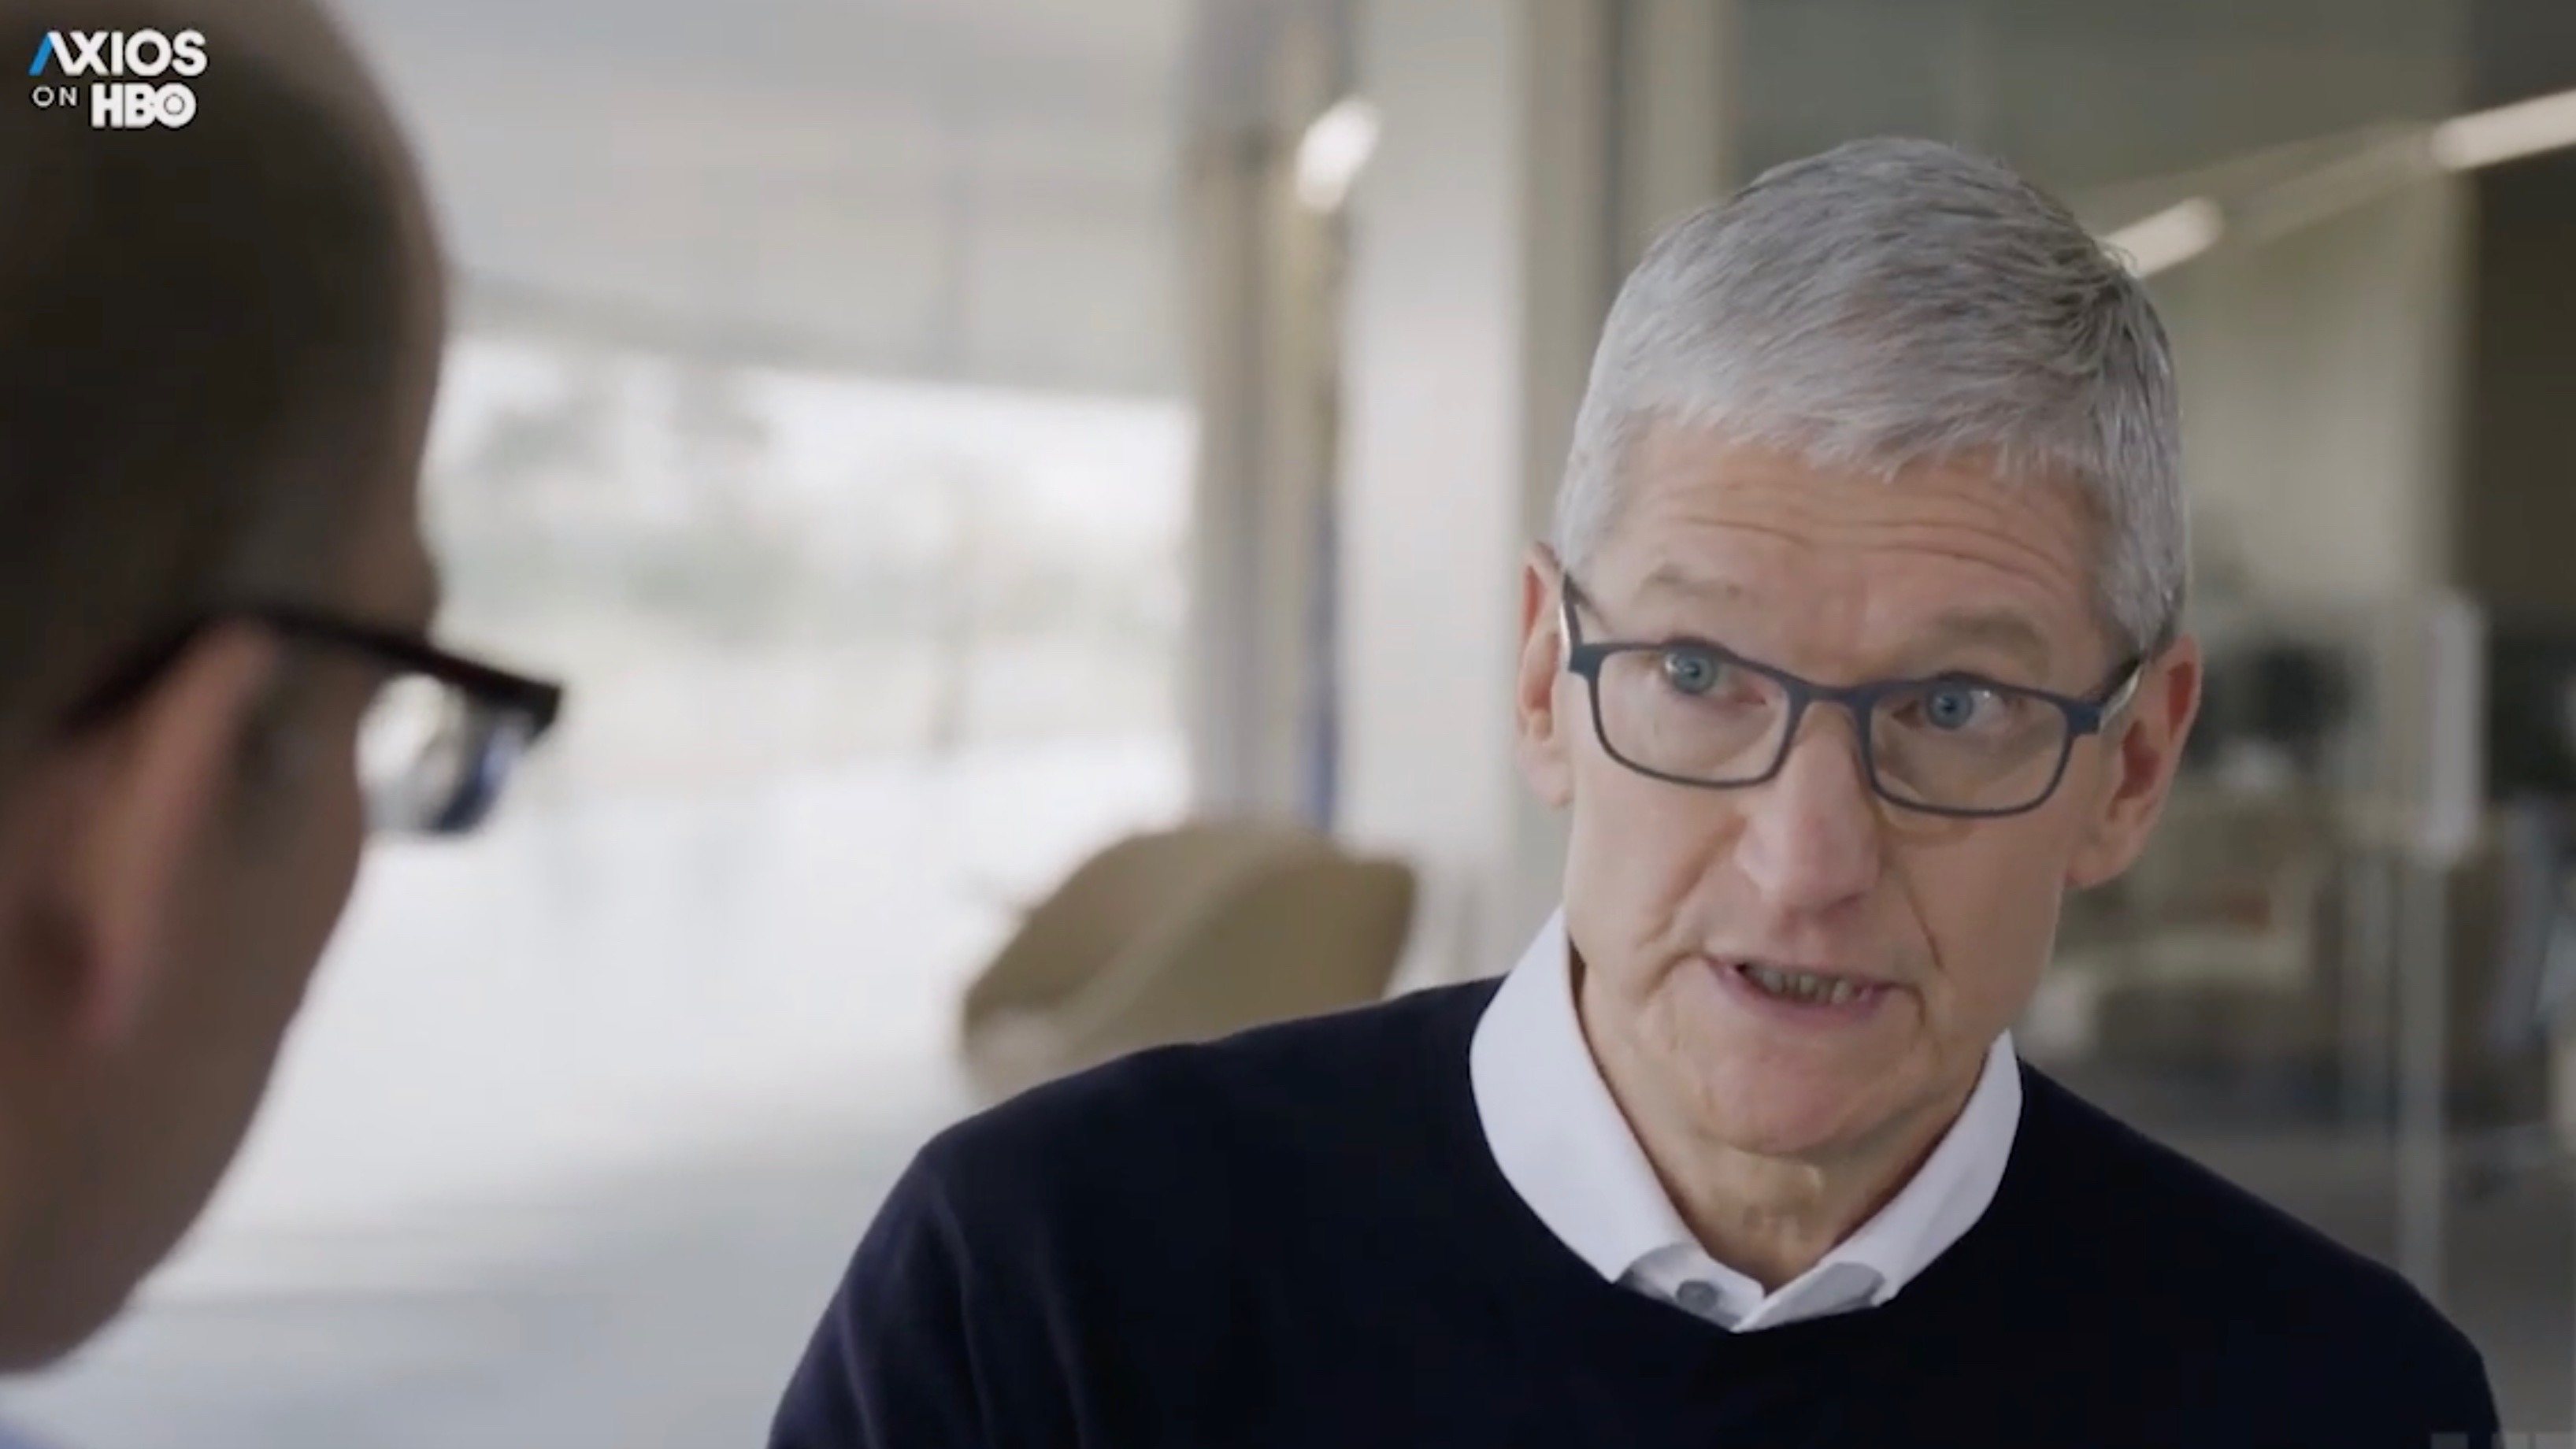 Tim Cook talks search deals w/ Google, privacy in tech, and his daily routine in HBO interview